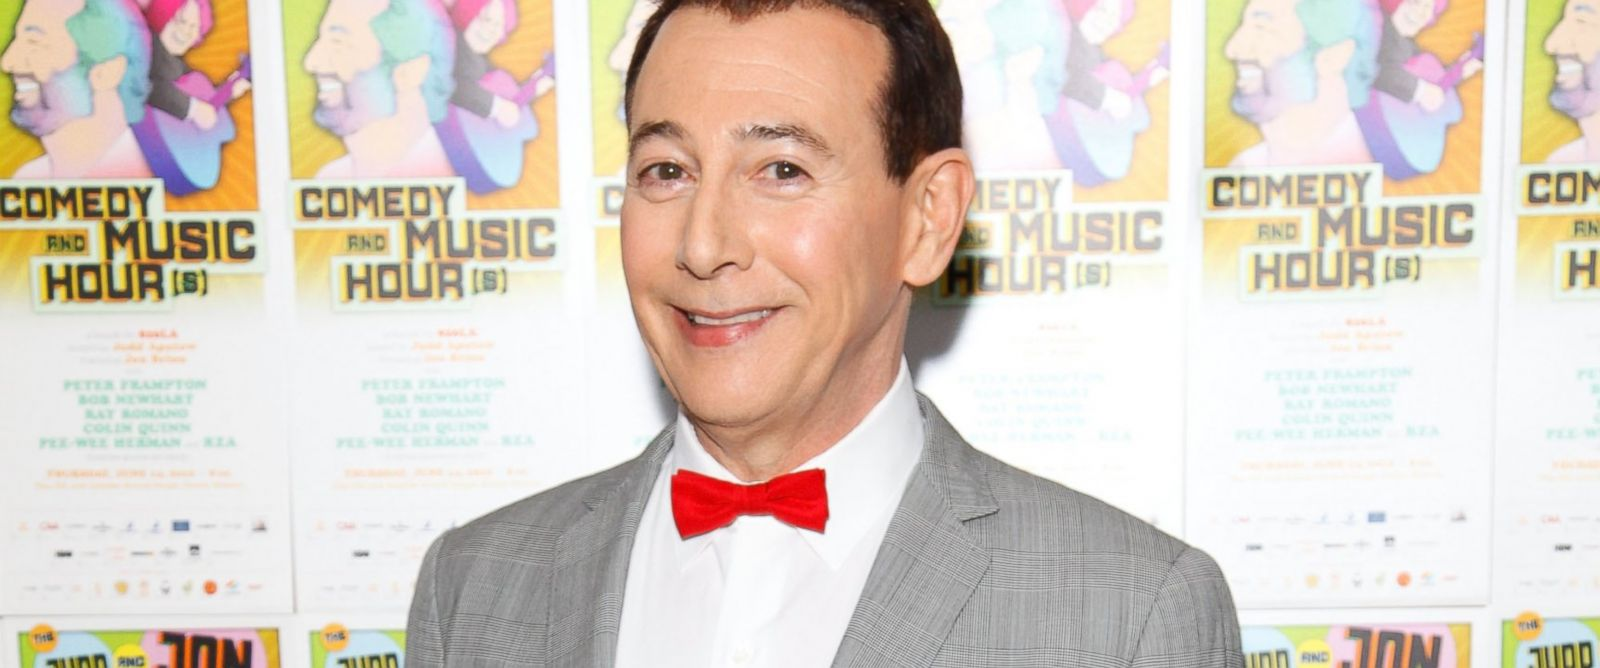 Pee-Wee Herman Is Returning to the Big Screen - ABC News